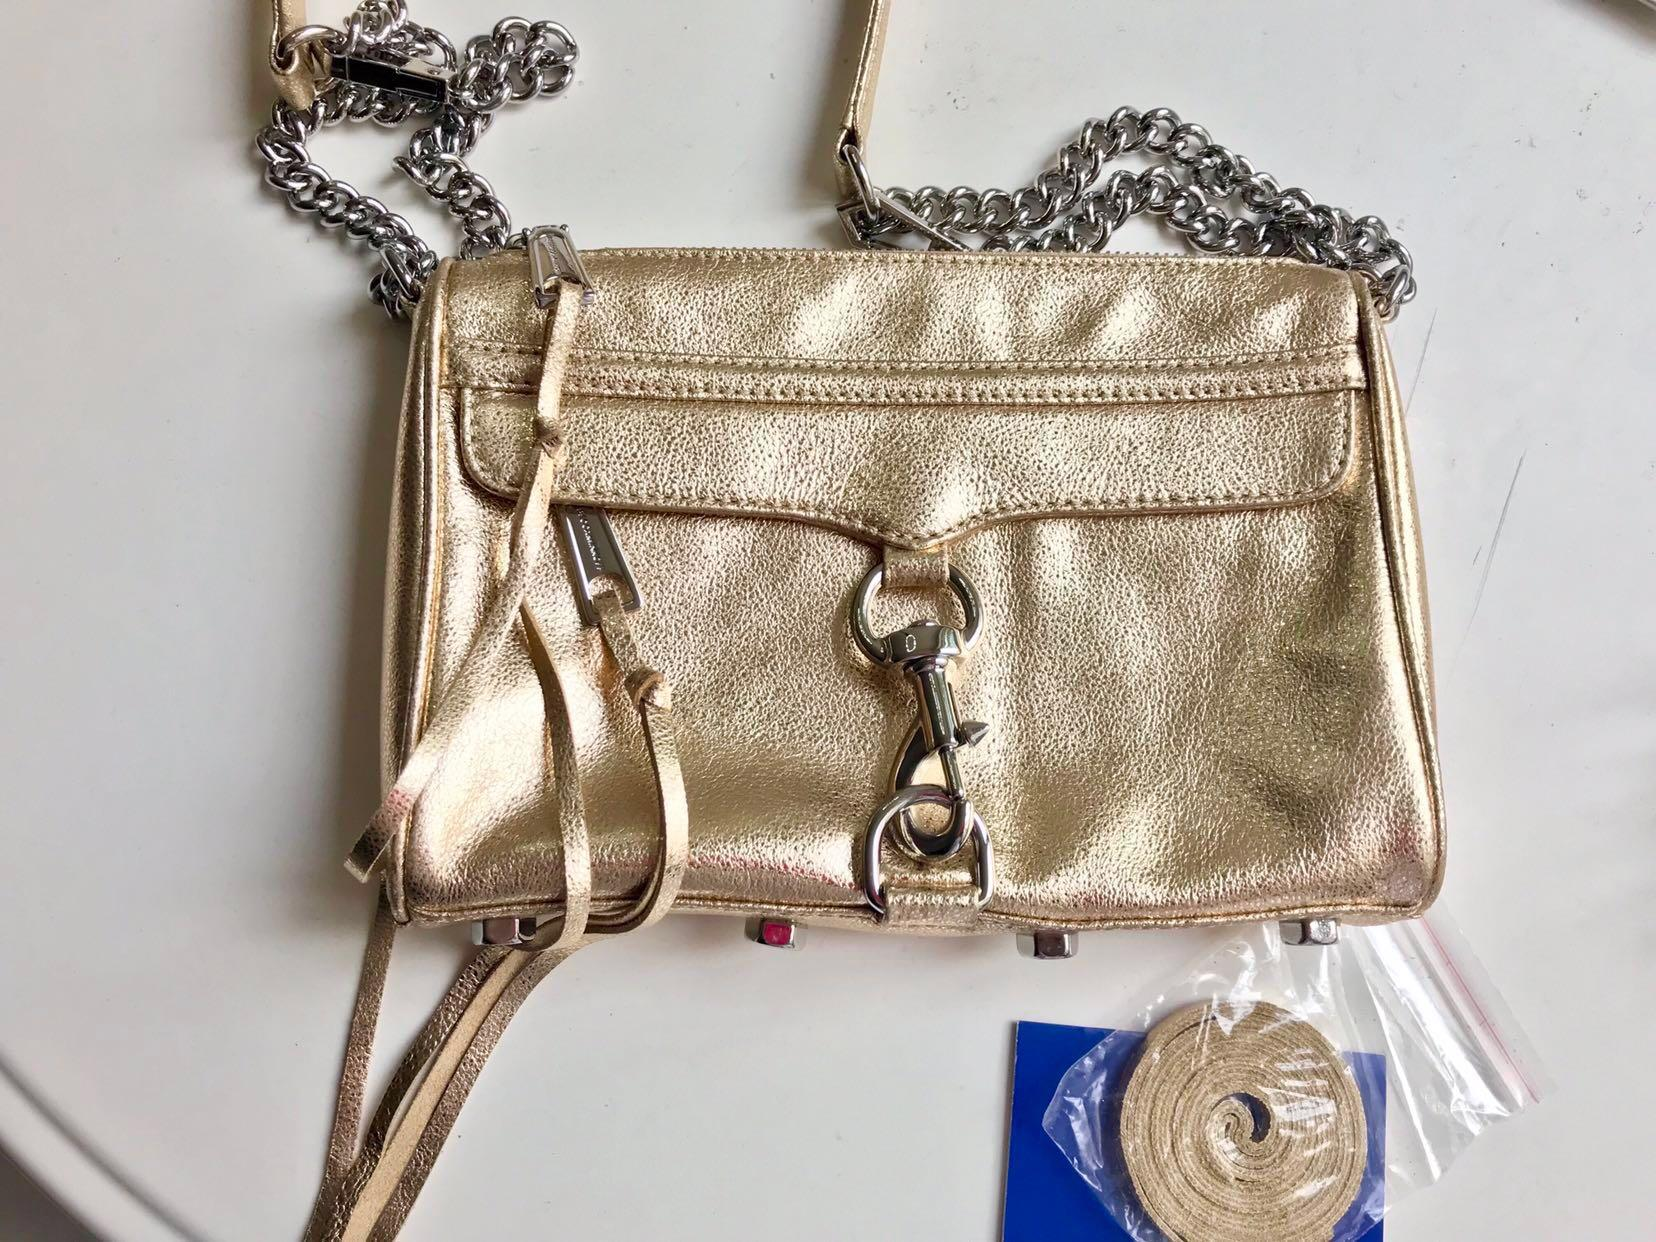 Rebecca Minkoff Mini MAC bag gold handbag with silver hardware